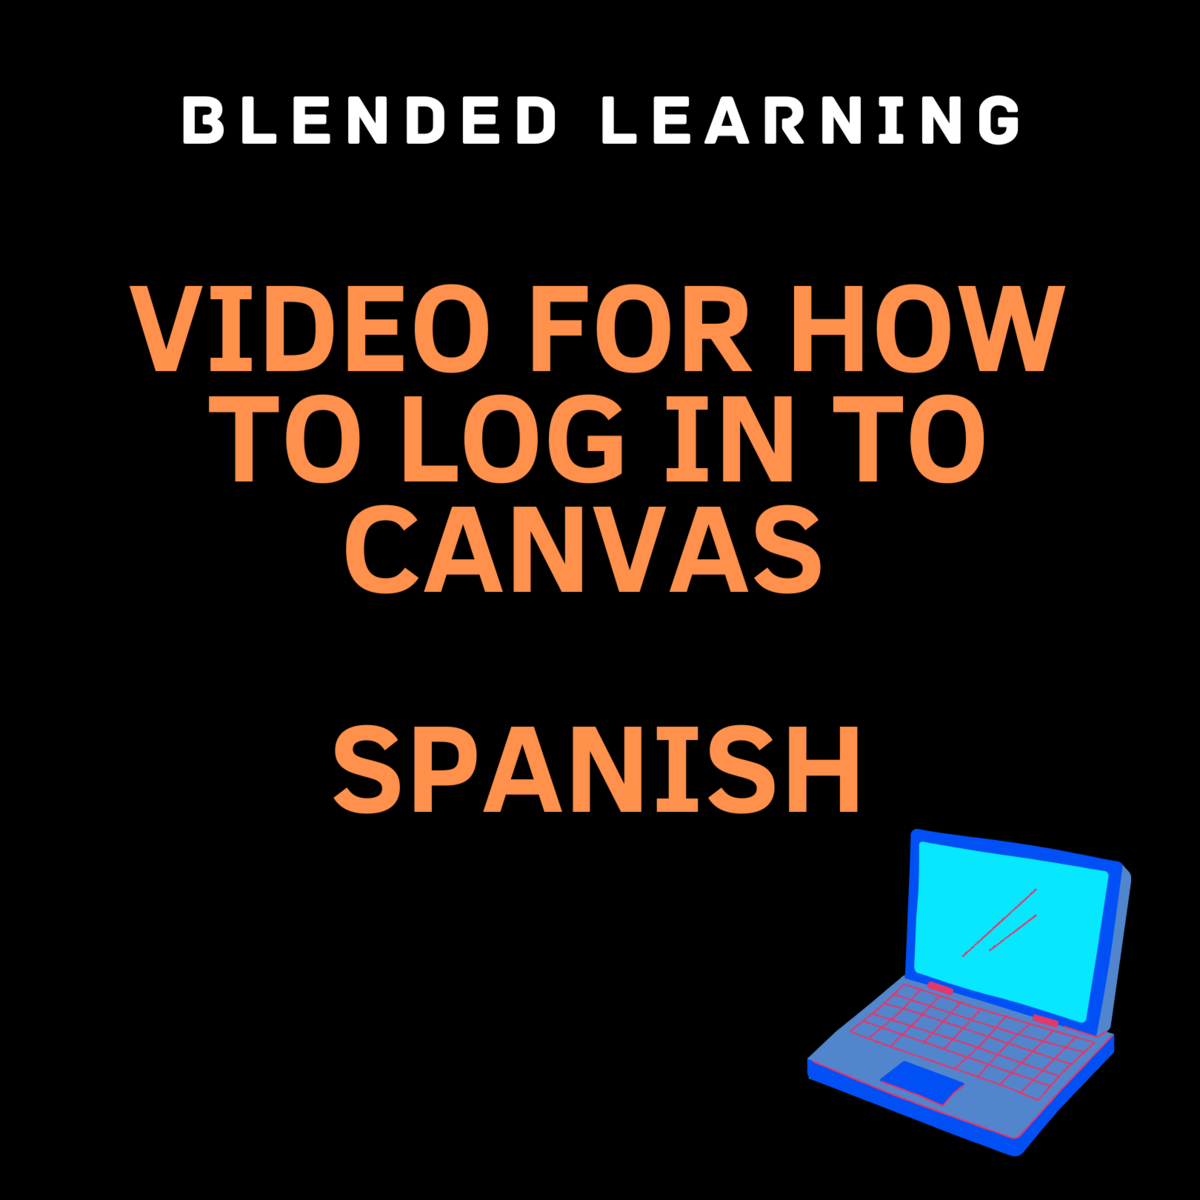 canvas spanish